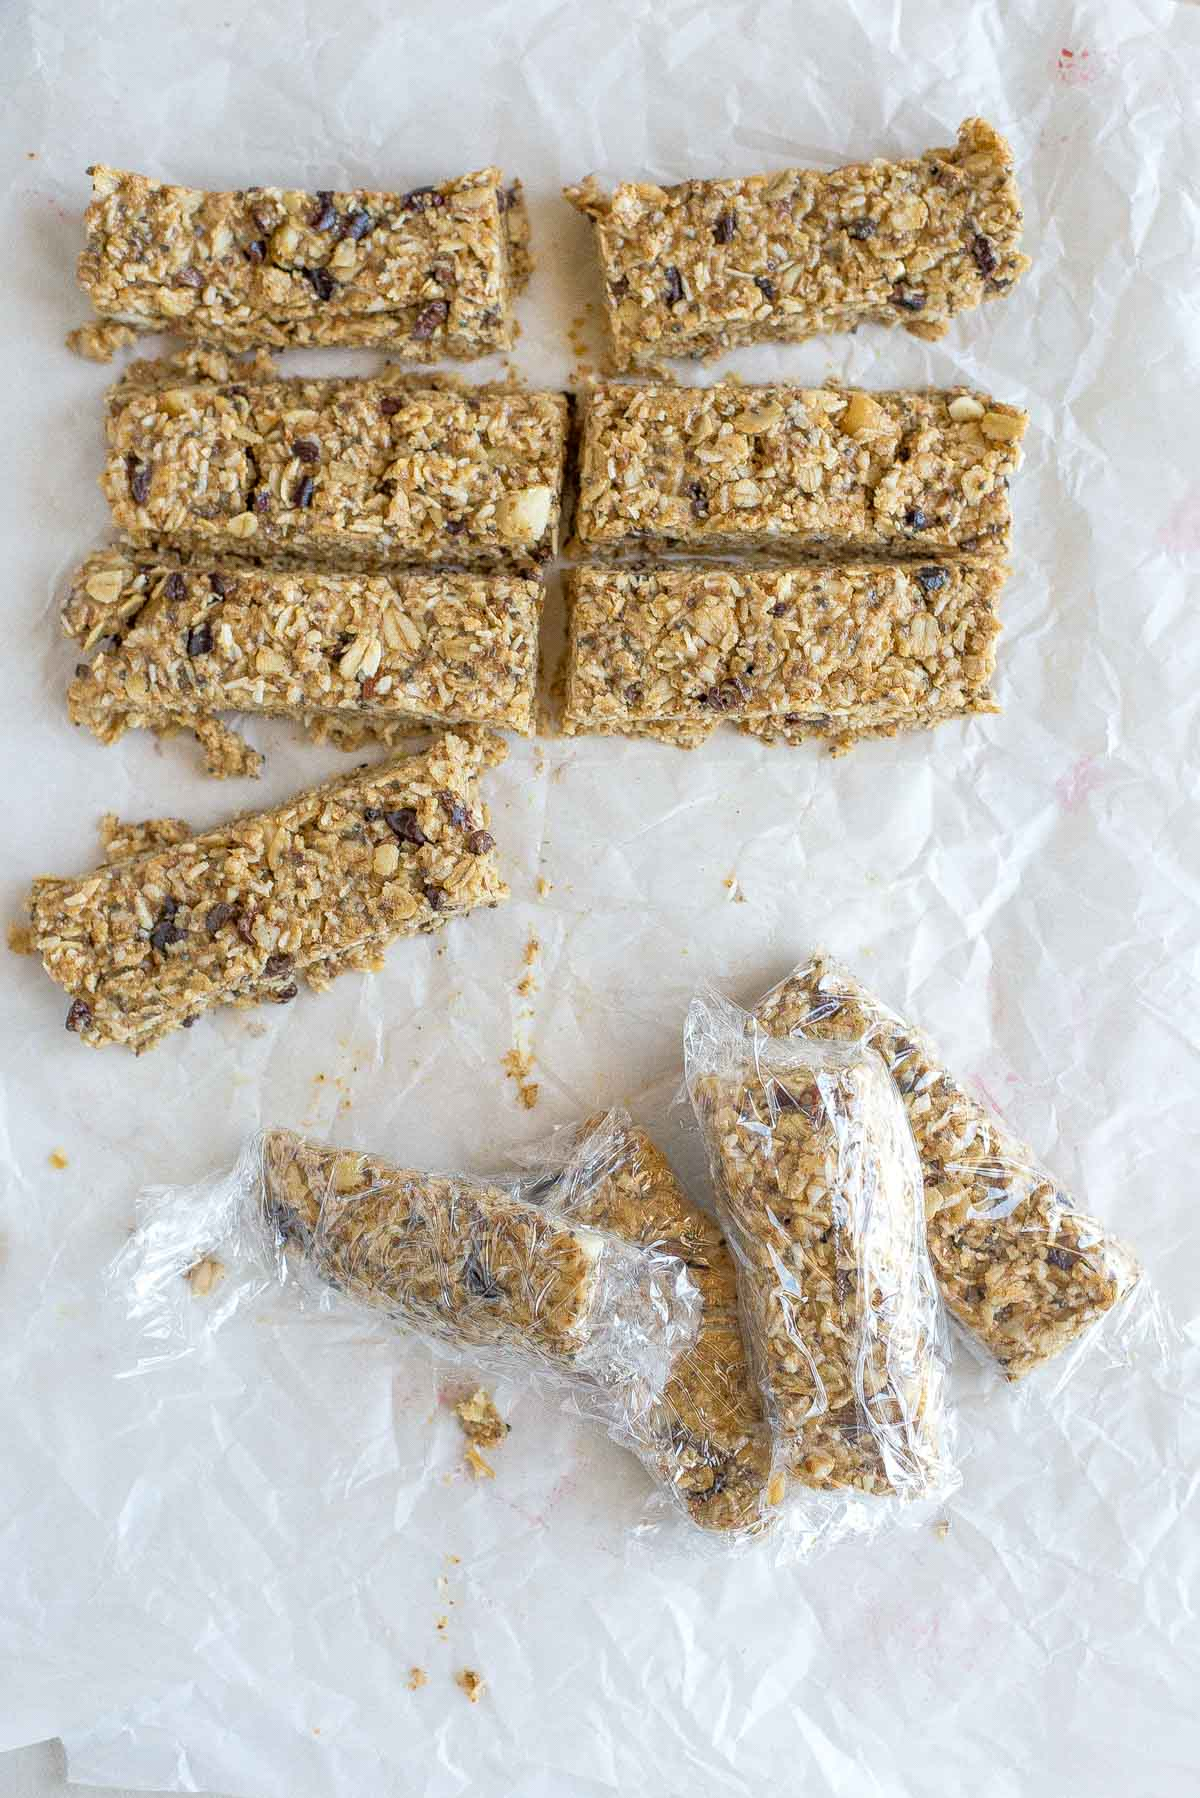 Are you looking for the perfect homemade snack? Check out this 10 minute chewy, no-bake, gluten-free granola bar recipe. You'll be glad you did.